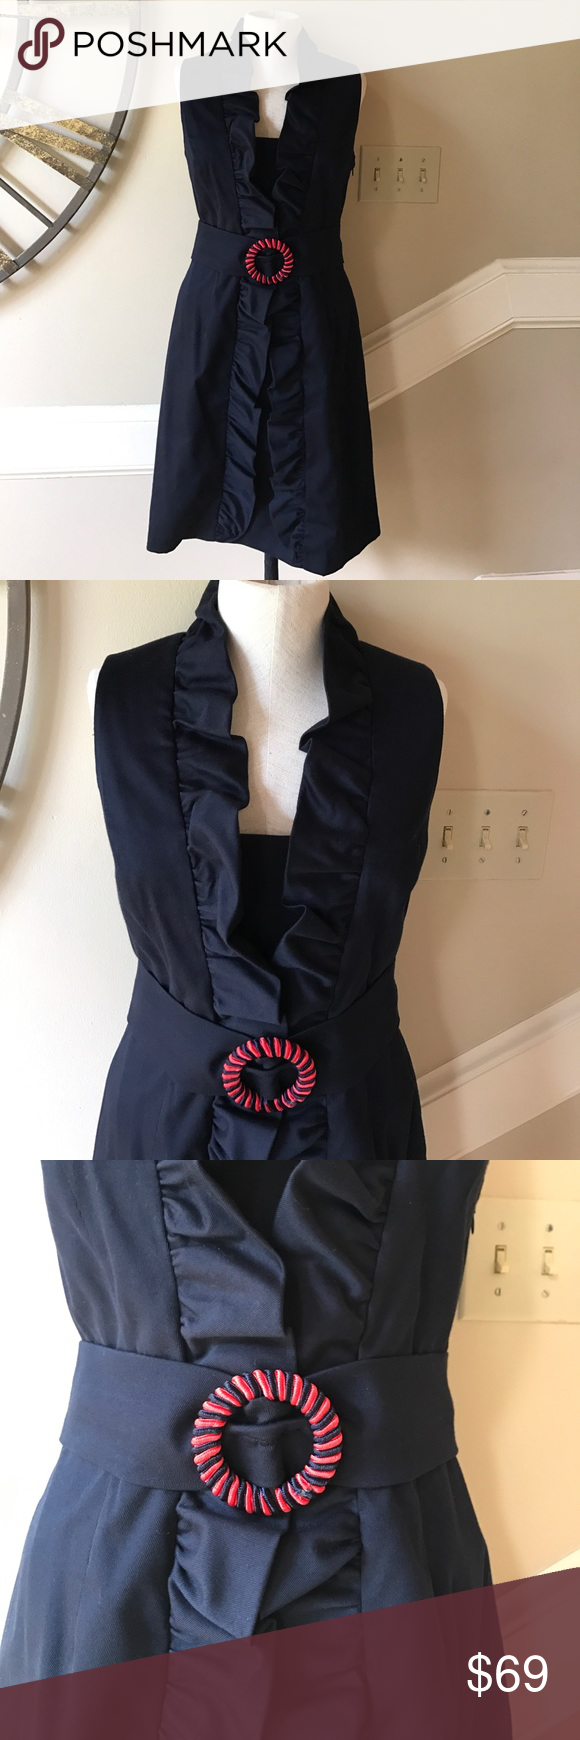 Nwt milly navy danielle dress size nwt nwt red belt perfect fit